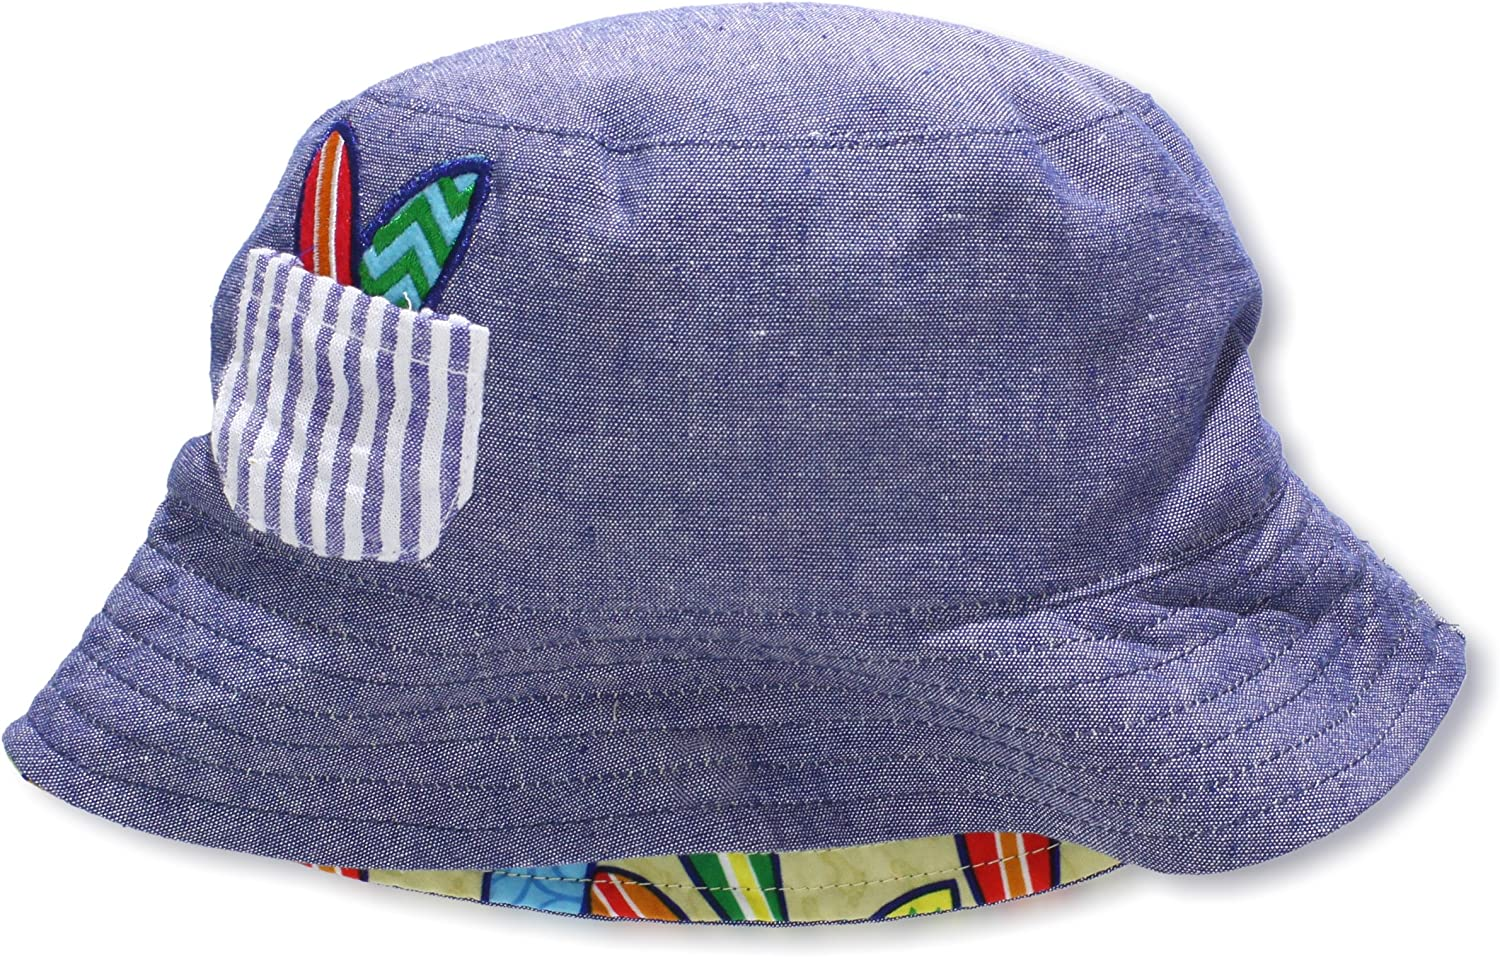 Mud Pie Baby-Boys Infant Quantity limited Chambray Reversible Year-end gift Hat Print Surfboard